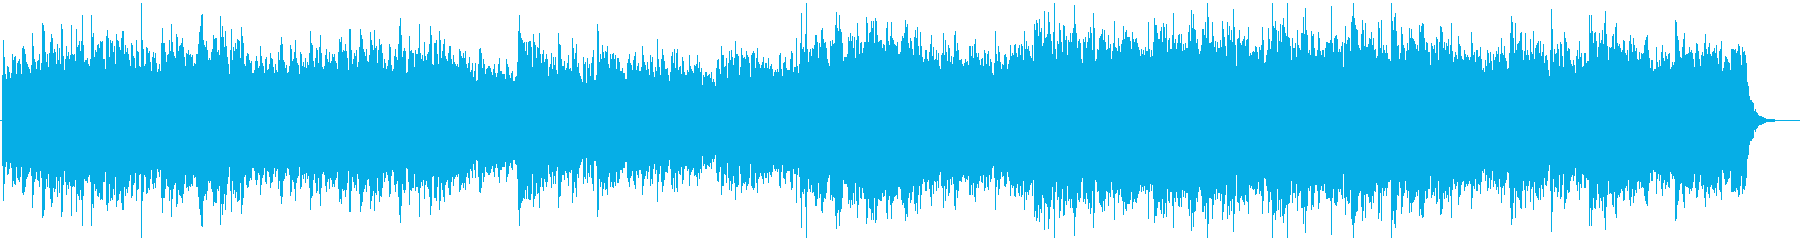 Warm, magnificent touching BGM's reproduced waveform